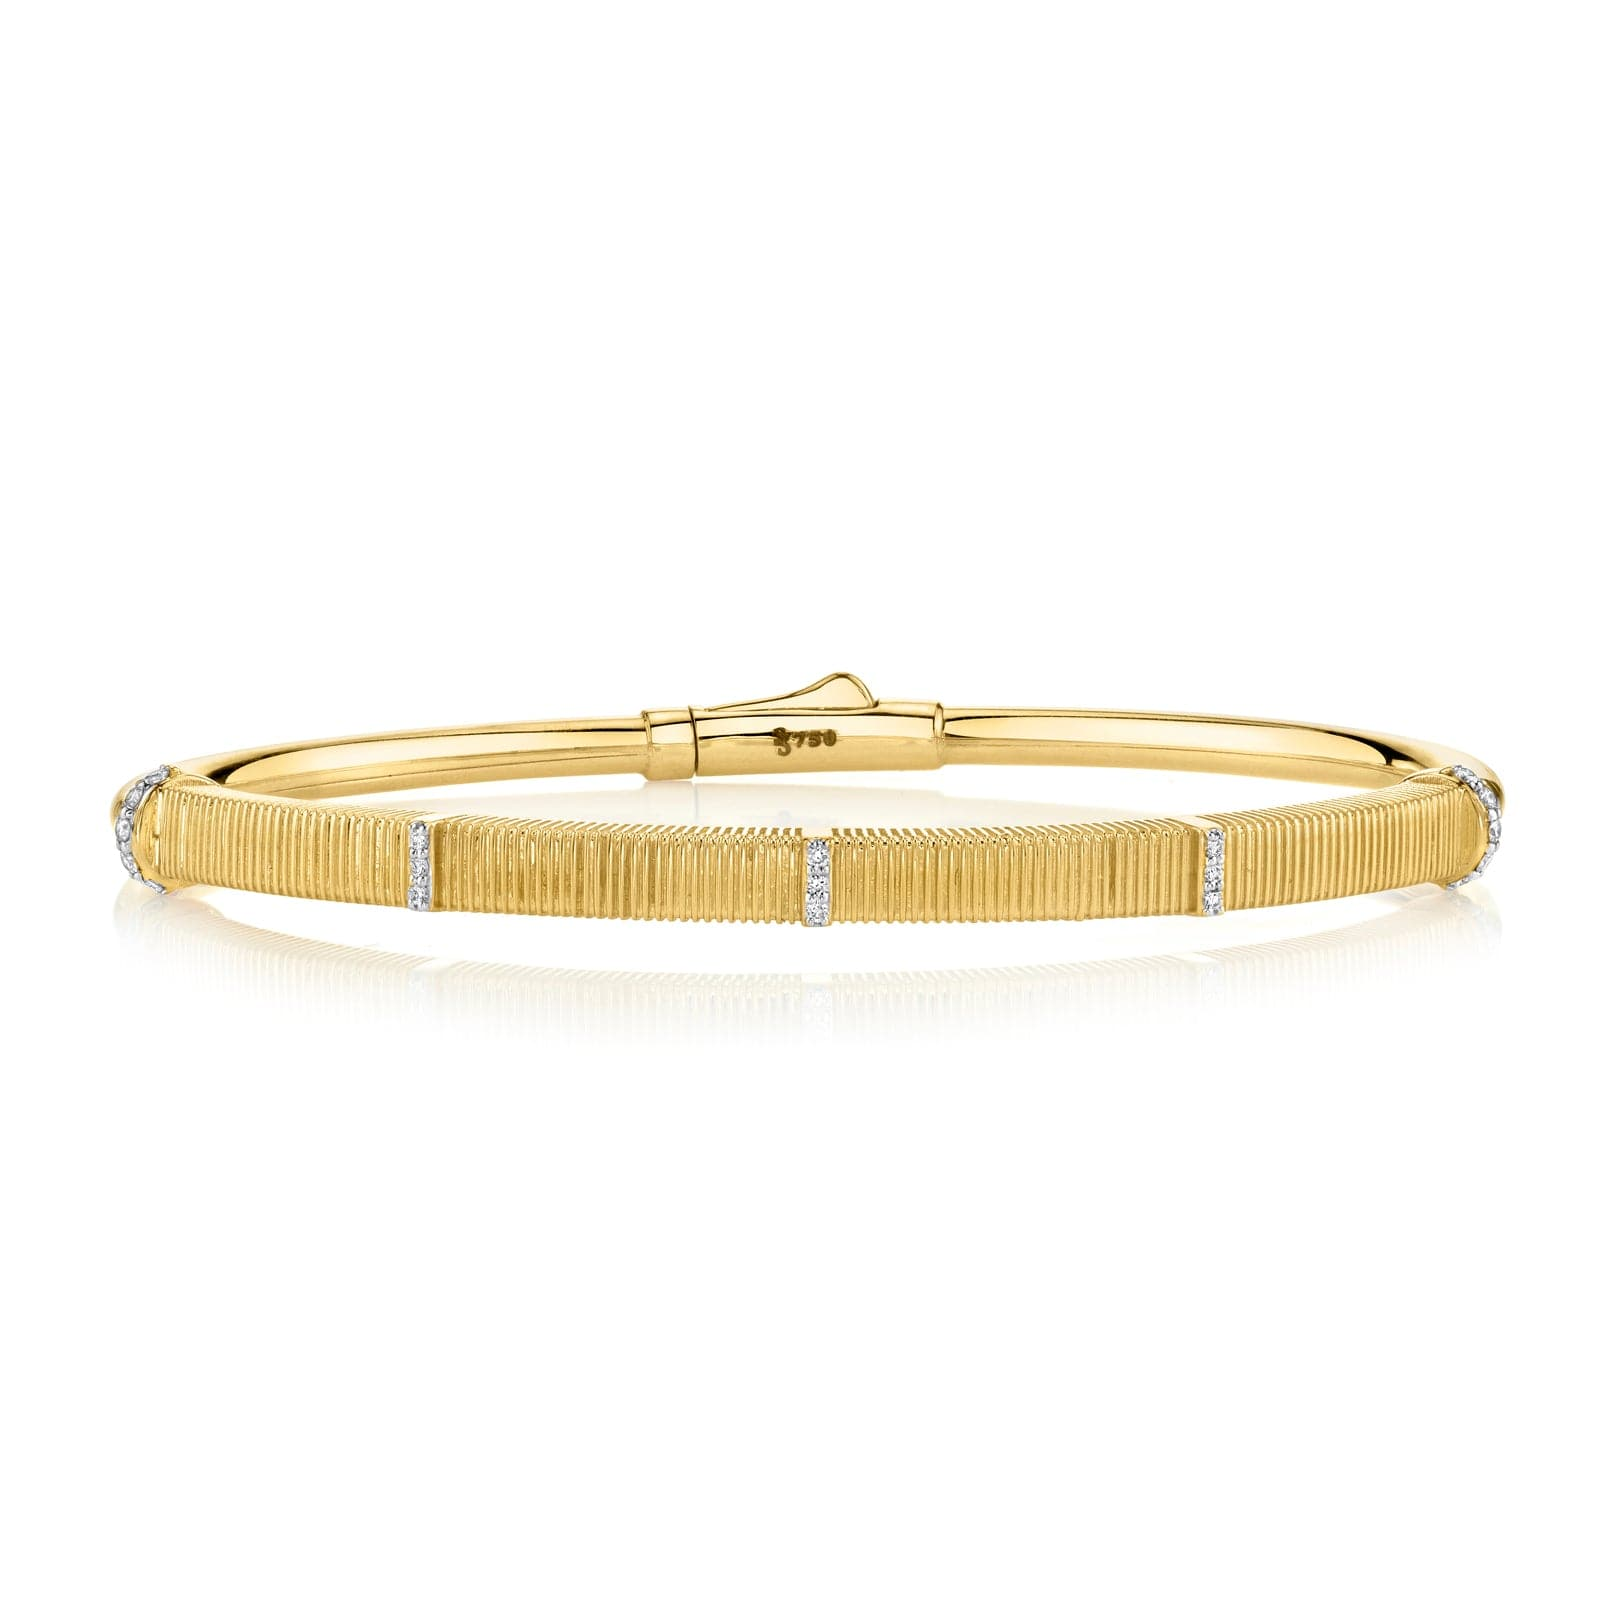 Sloane Street 18K Yellow Gold Strie Bracelet With White Diamond Detail